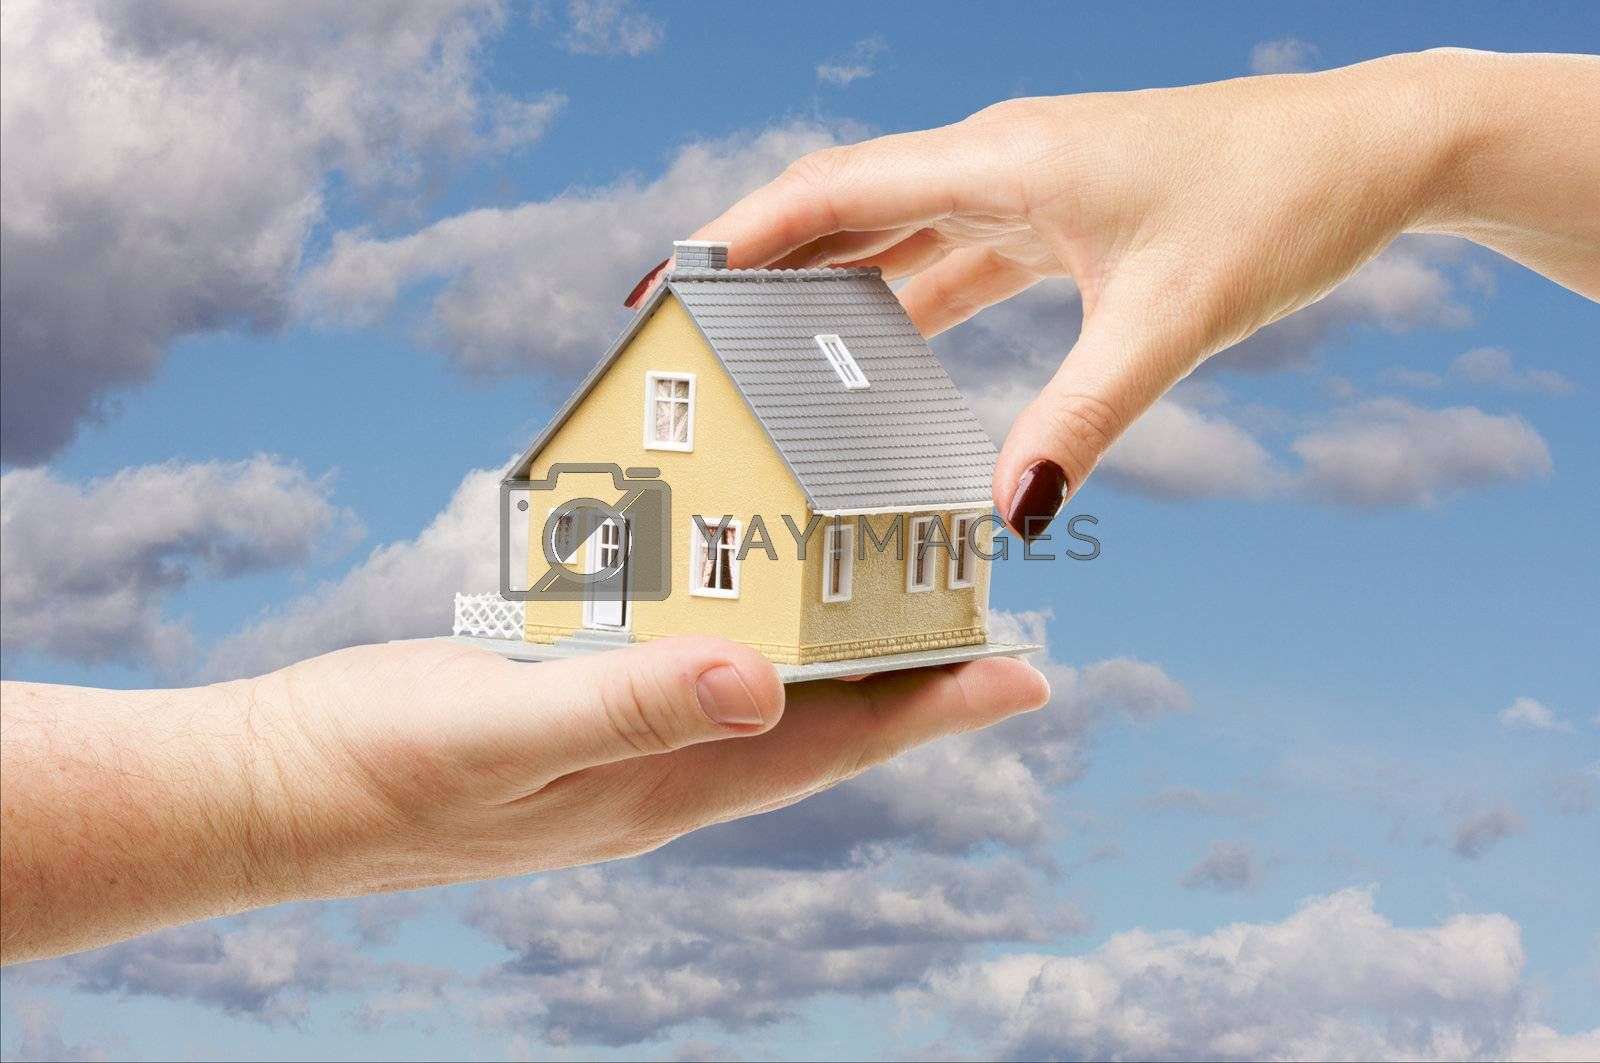 Female hand reaching for a house on a partly cloudy sky background.